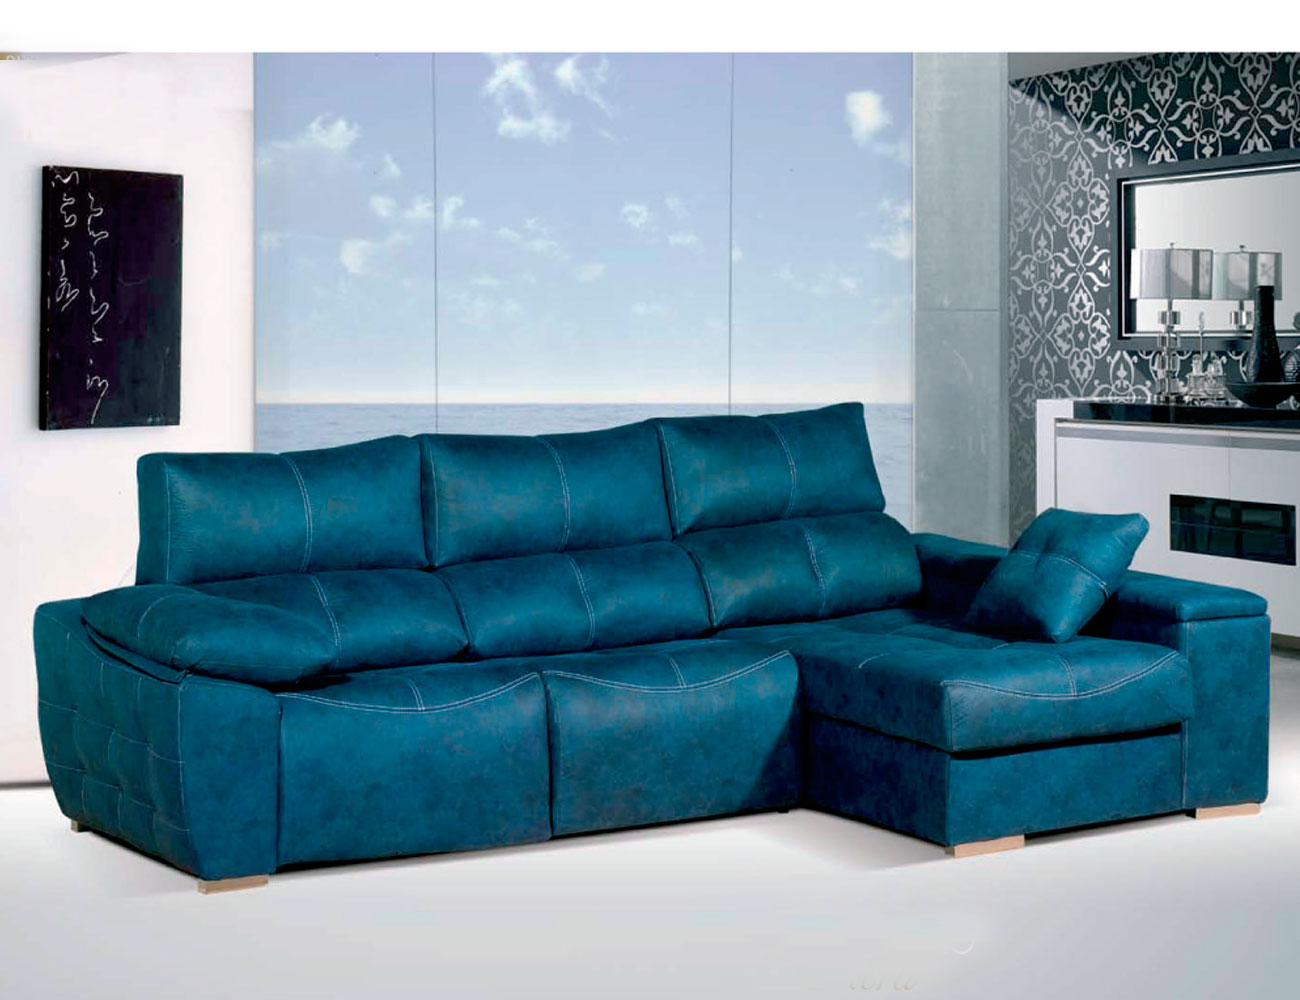 Sofa chaiselongue relax 2 motores anti manchas turquesa21